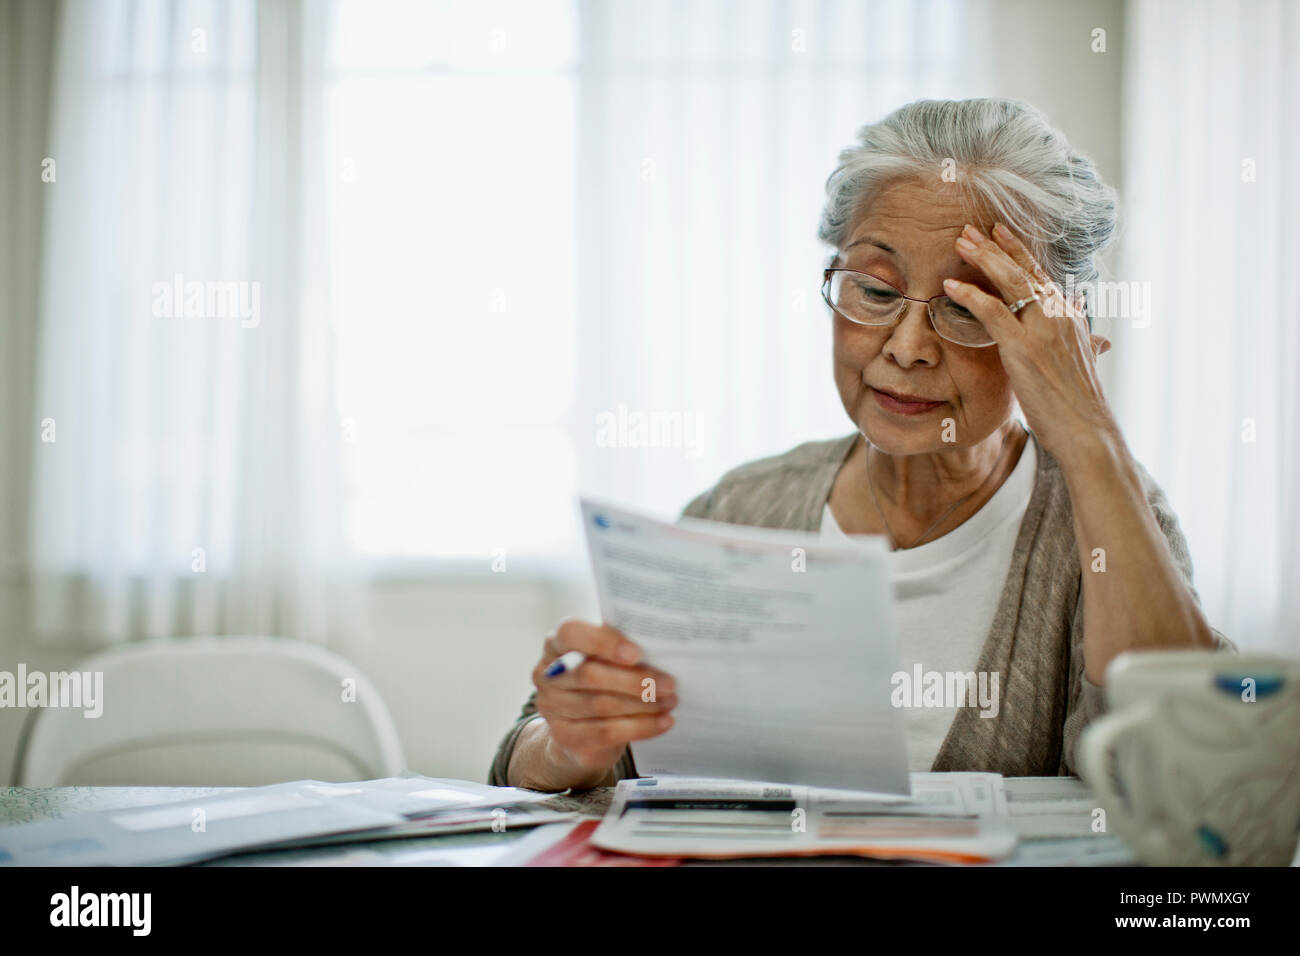 Anxious elderly woman is worried about how she can pay the bill she has received. - Stock Image